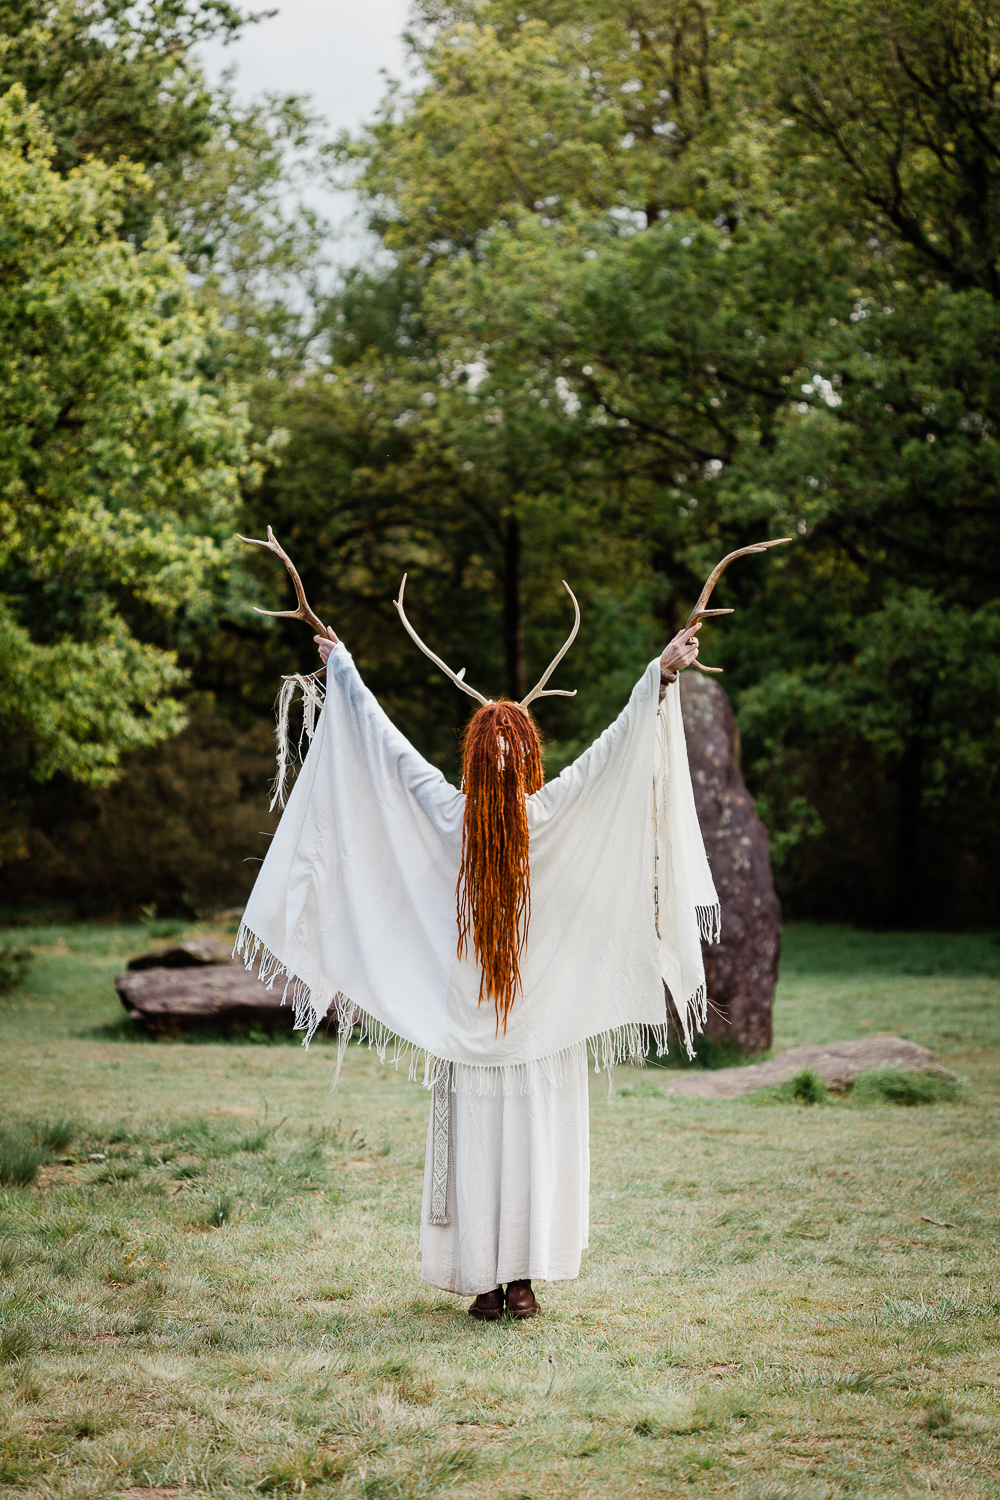 heilung band amplified history Maria